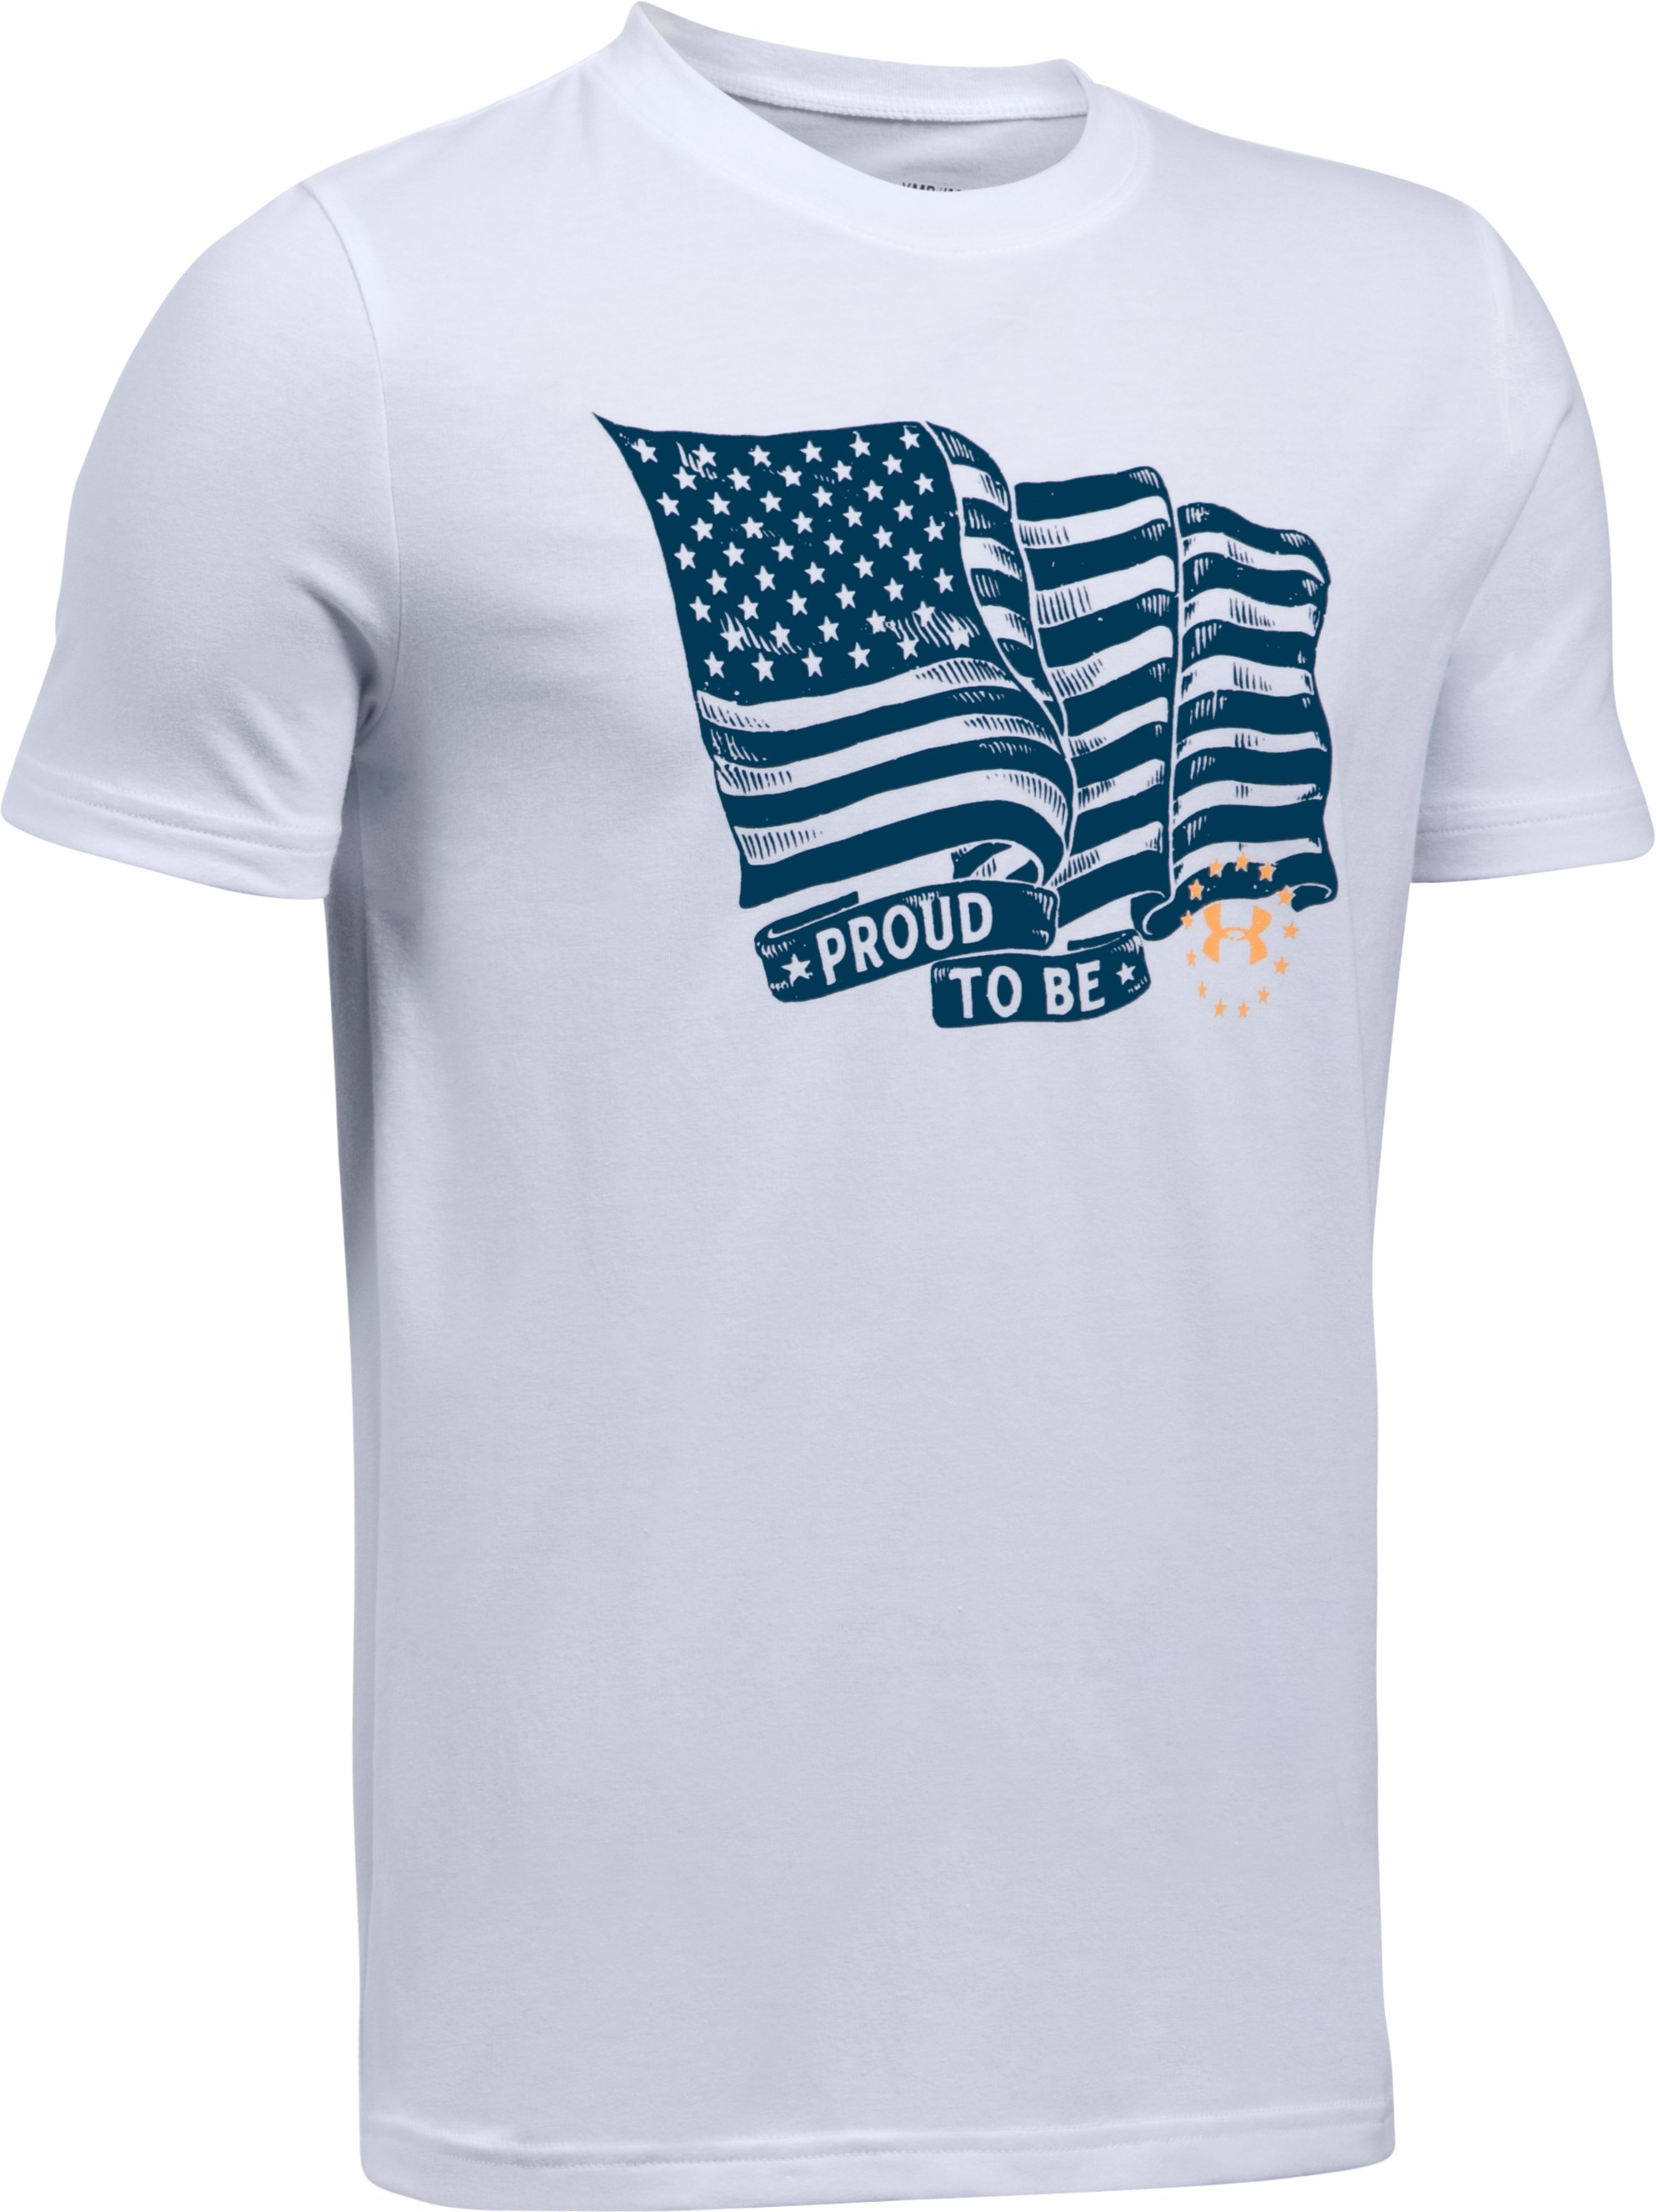 Boys' UA Freedom Proud To Be T-Shirt, White